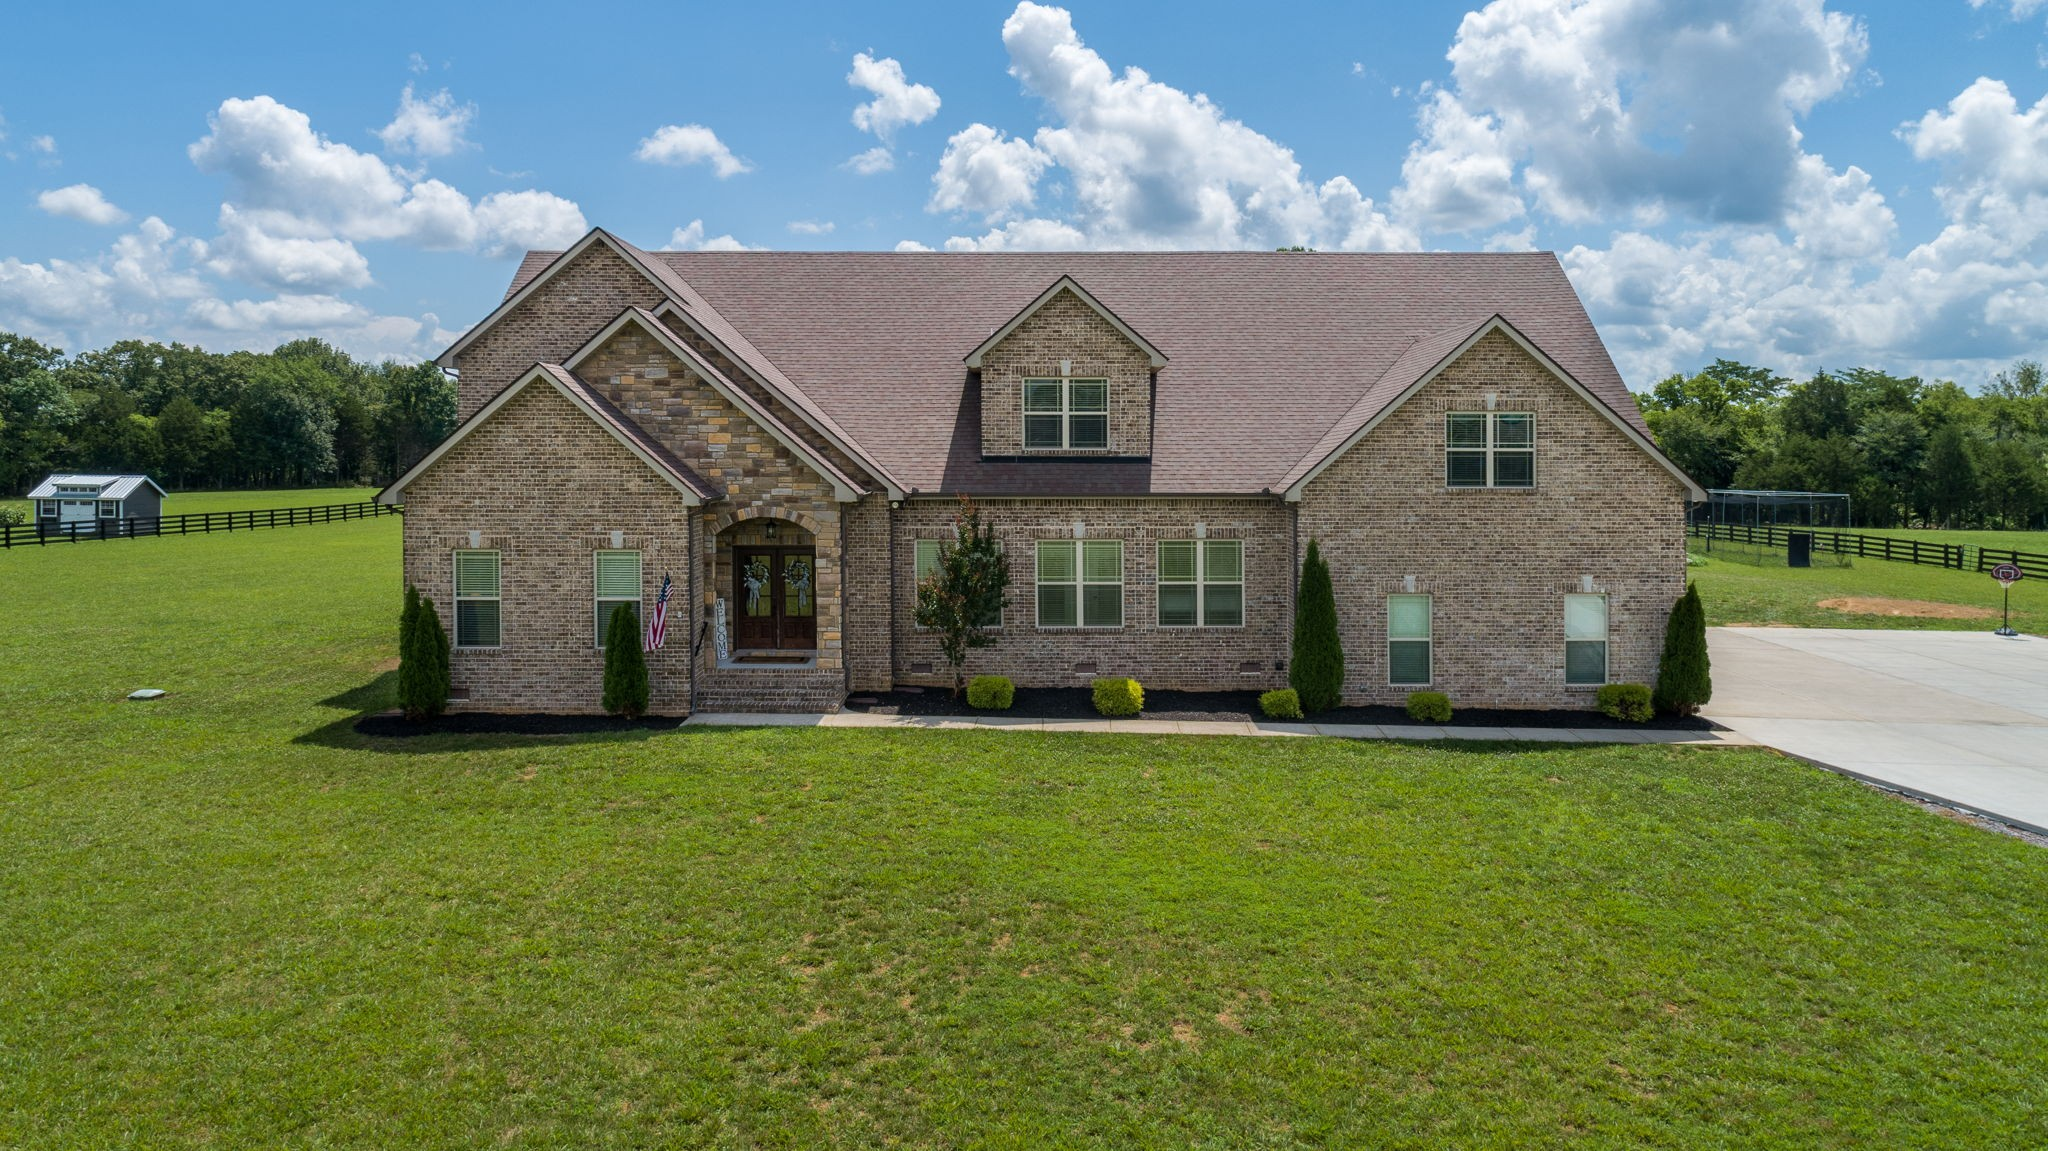 7607 Midland Rd Property Photo - Christiana, TN real estate listing